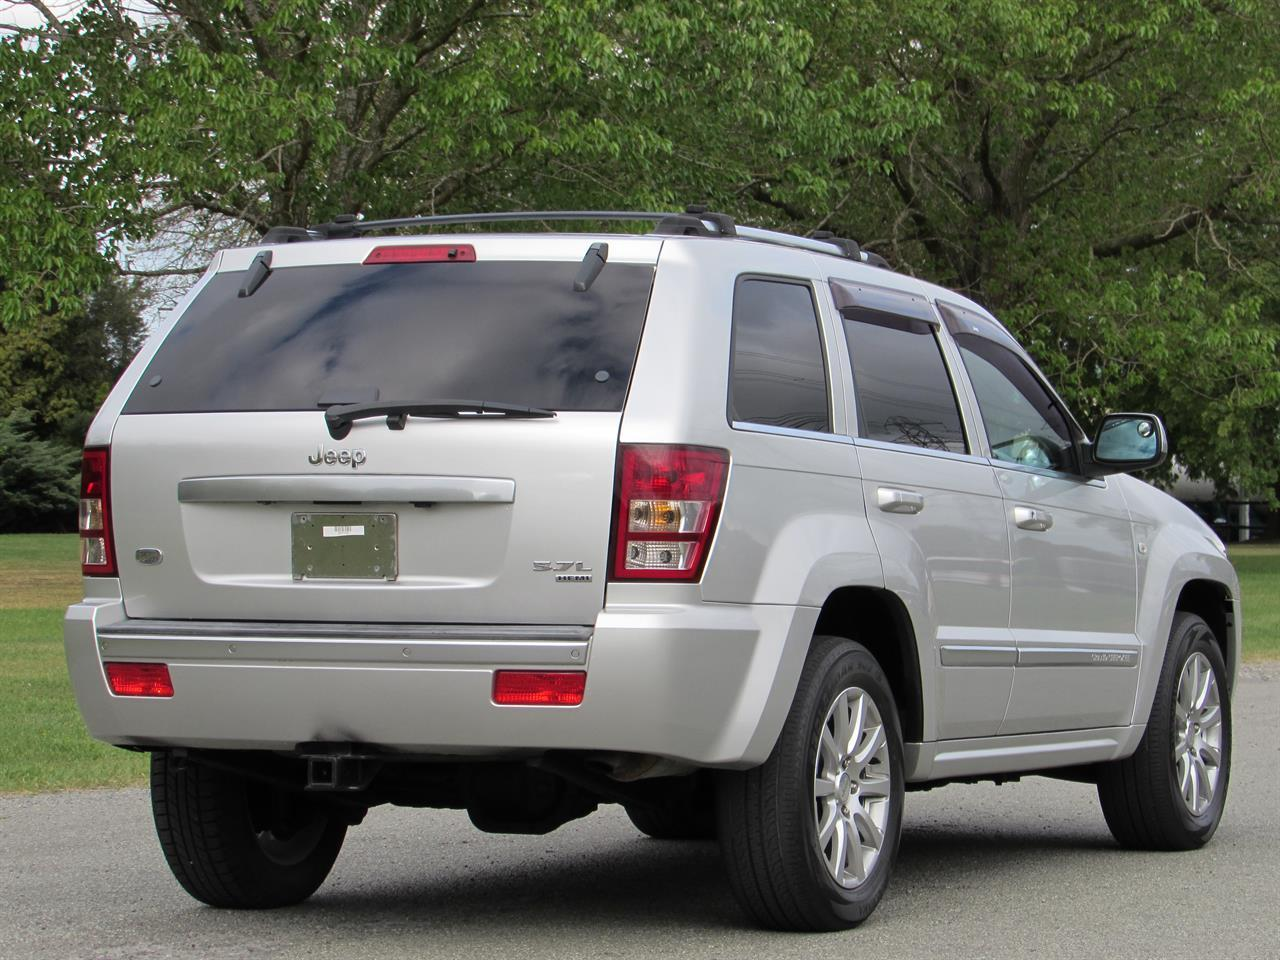 image-5, 2007 Jeep Grand Cherokee Limited 5.7L Hemi V8 at Christchurch